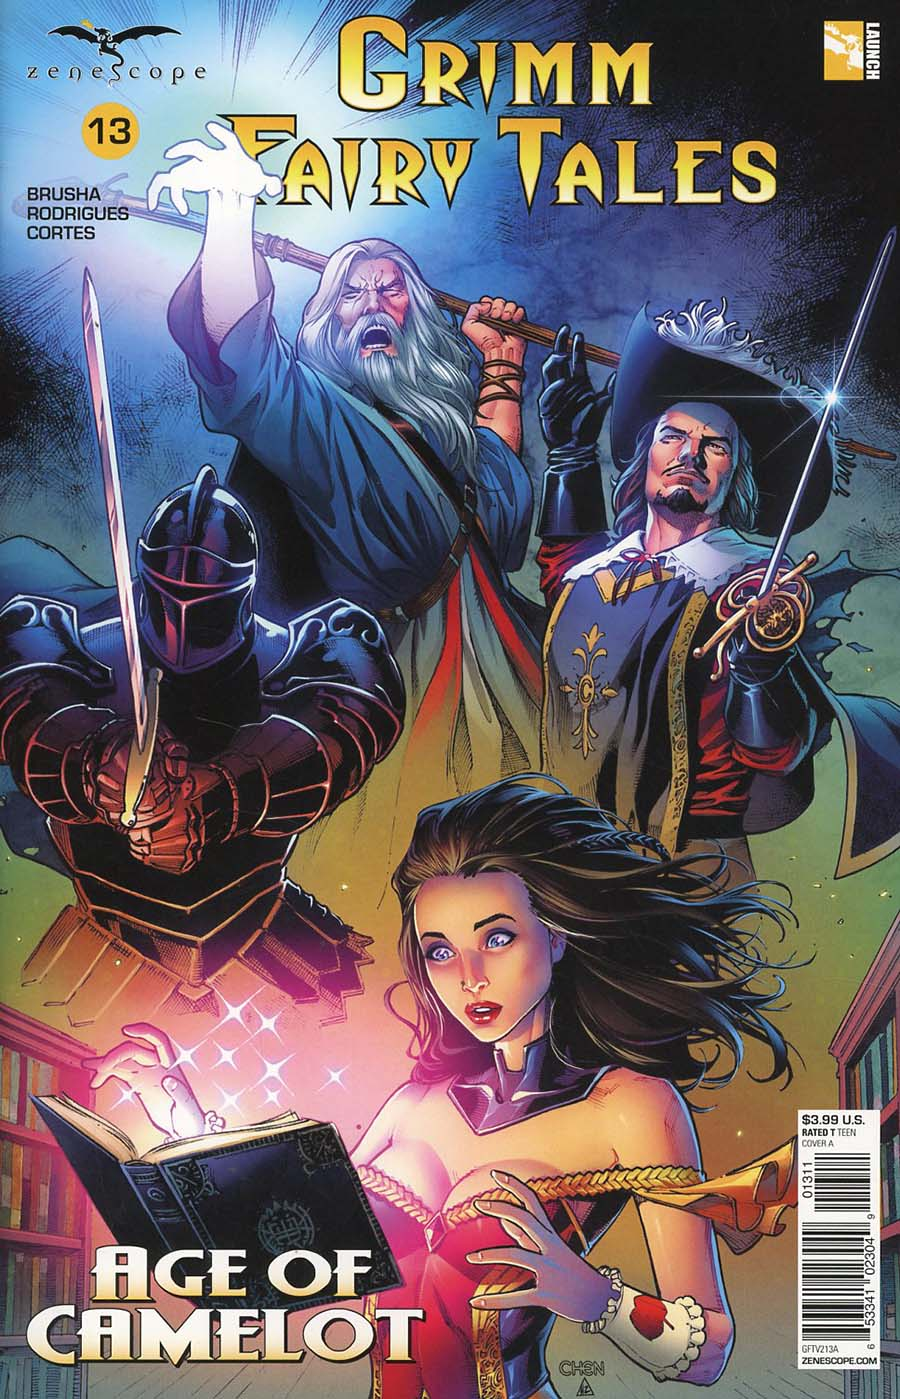 Grimm Fairy Tales Vol 2 #13 Cover A Sean Chen